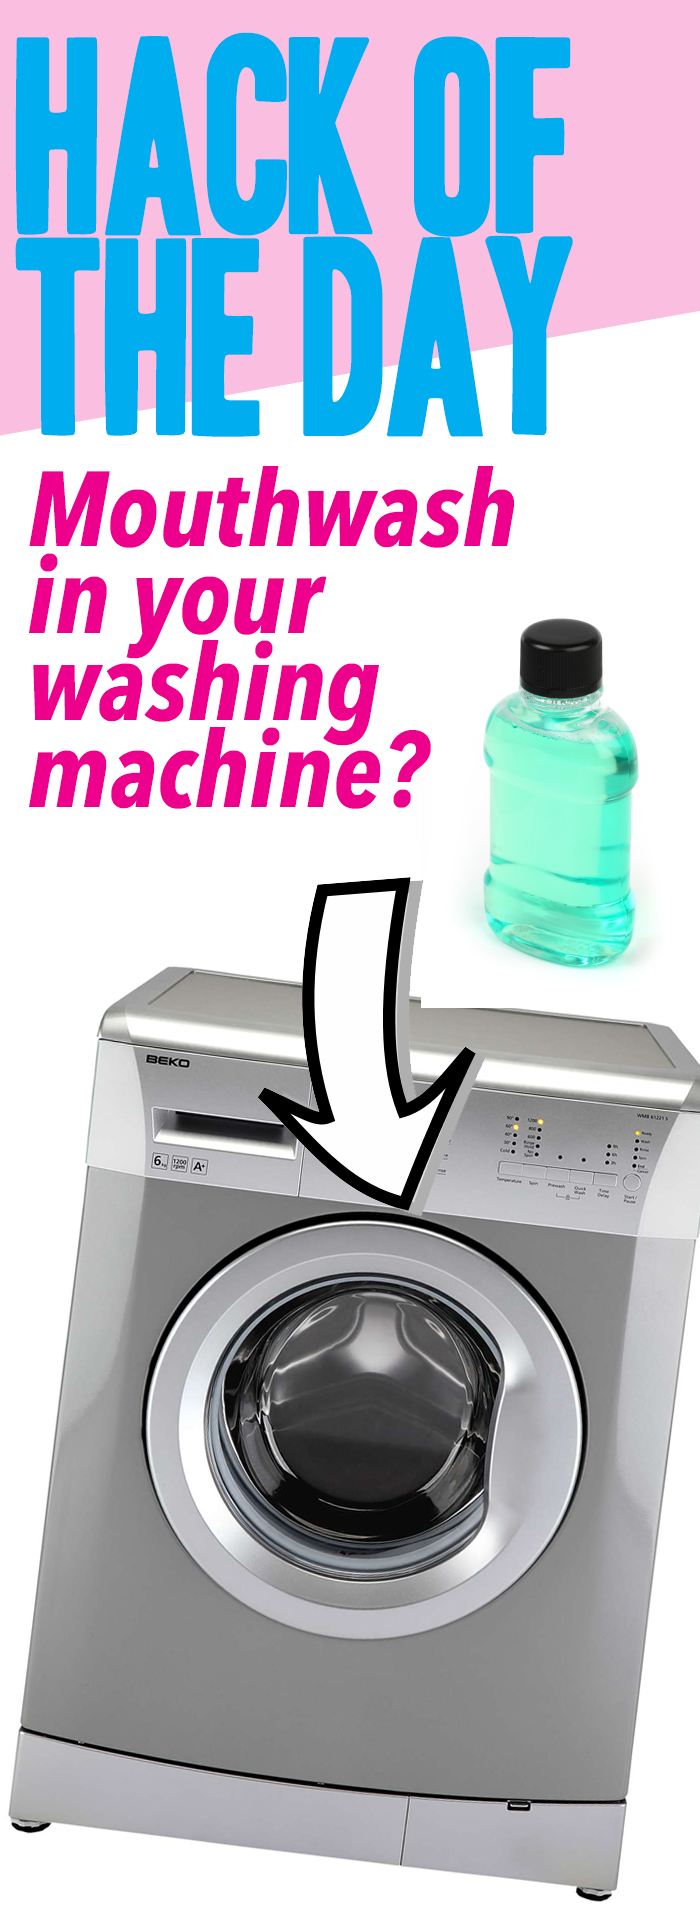 laundry life hacks to make your life easier i never knew you could mouth wash in the washing. Black Bedroom Furniture Sets. Home Design Ideas